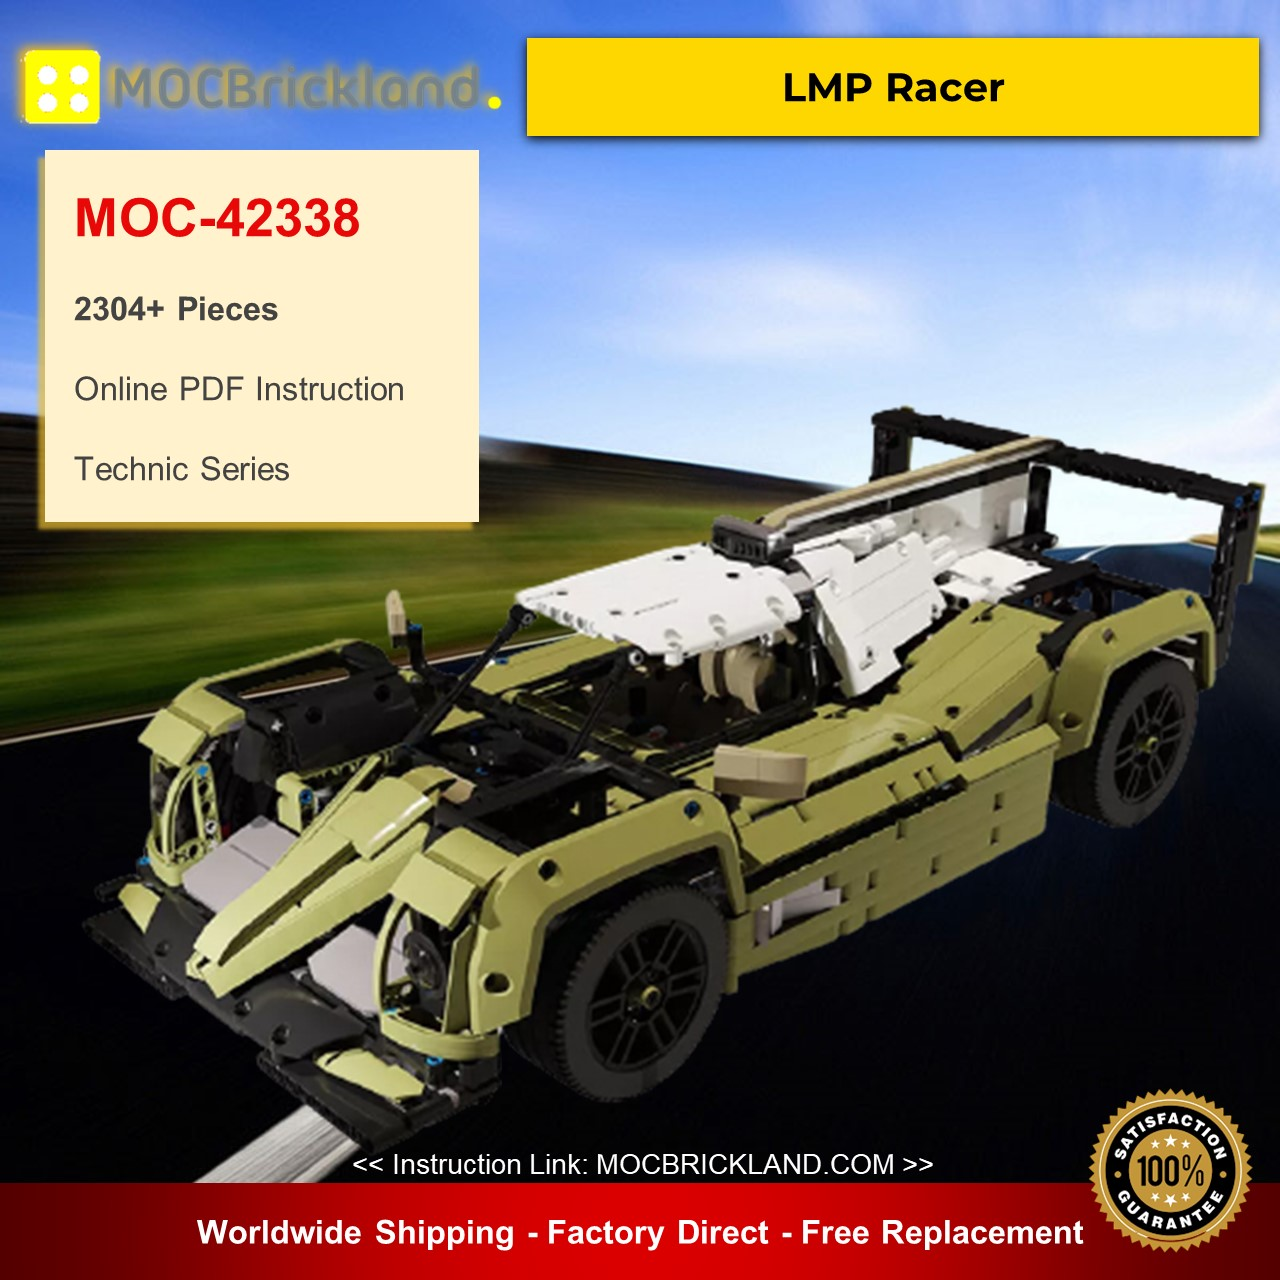 MOC-42338 Technic LMP Racer Alternative Build of LEGO Set 42110-1 Designed By Dyens Creations With 2304 Pieces